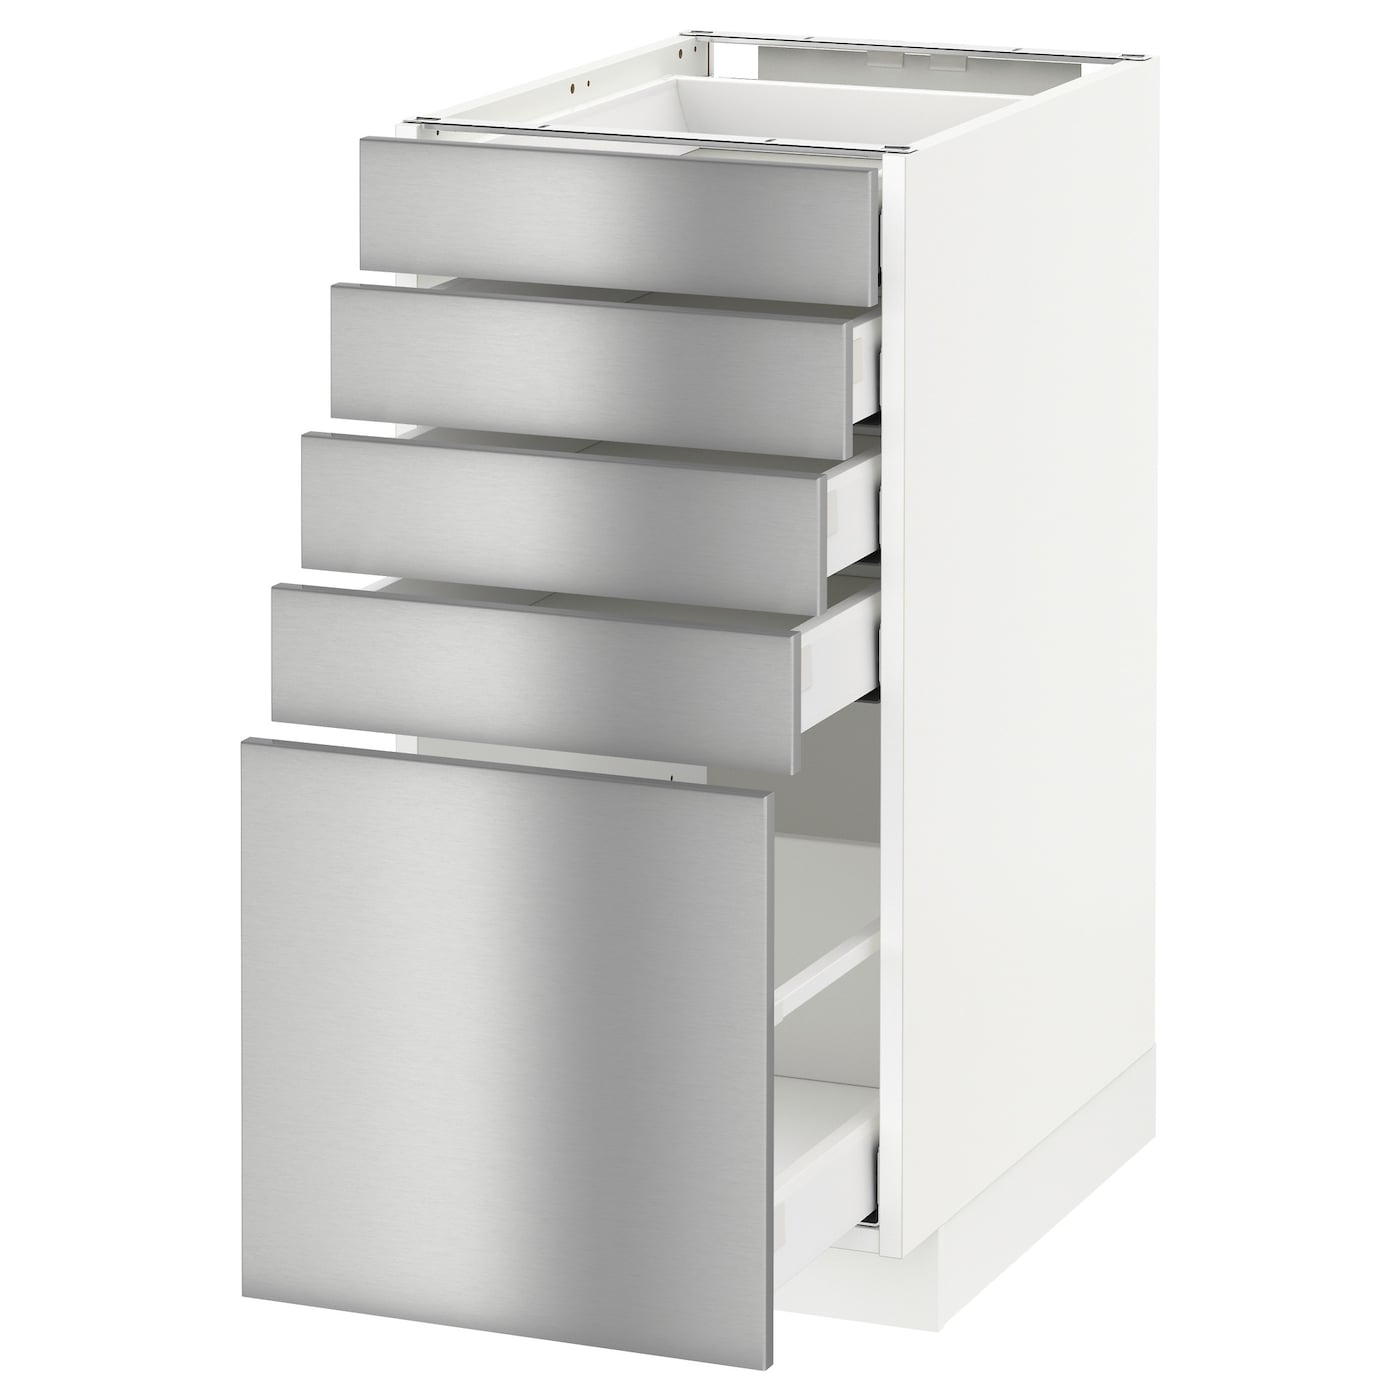 Metod maximera base cabinet with 5 drawers white grevsta for Stainless steel kitchen cabinet price